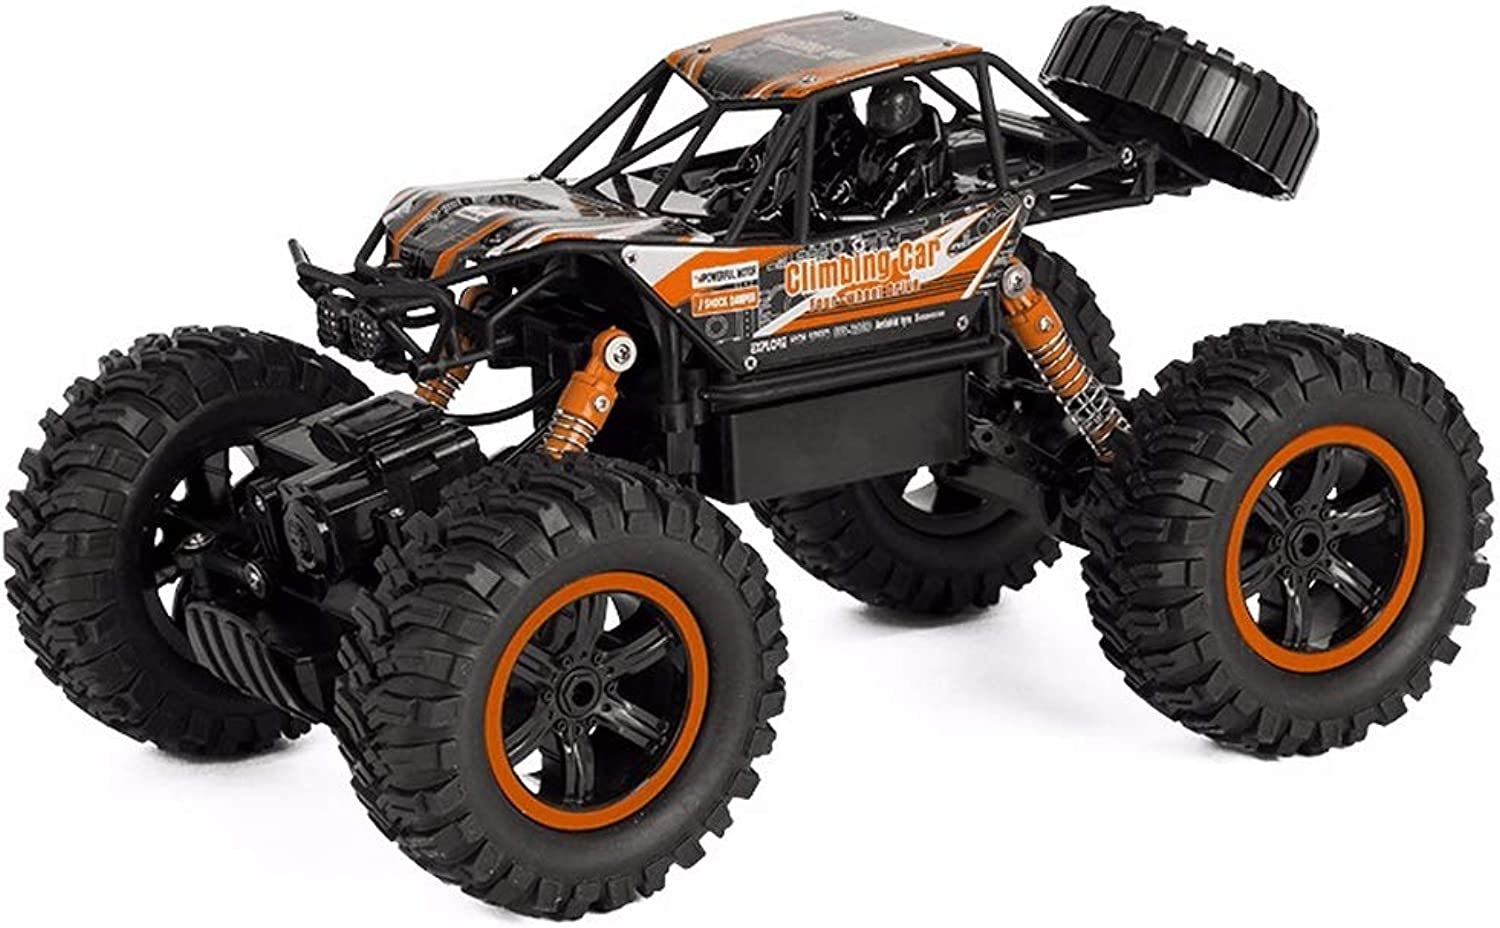 PETRLOY High Speed Racing 1 14 Car OffRoad Vehicle 2.4Ghz Radio Remote Control Monster 4WD Trucks Car With Two Rechargeable Batteries Off Road Crawlers Cars Batteries And Dual Motors Car